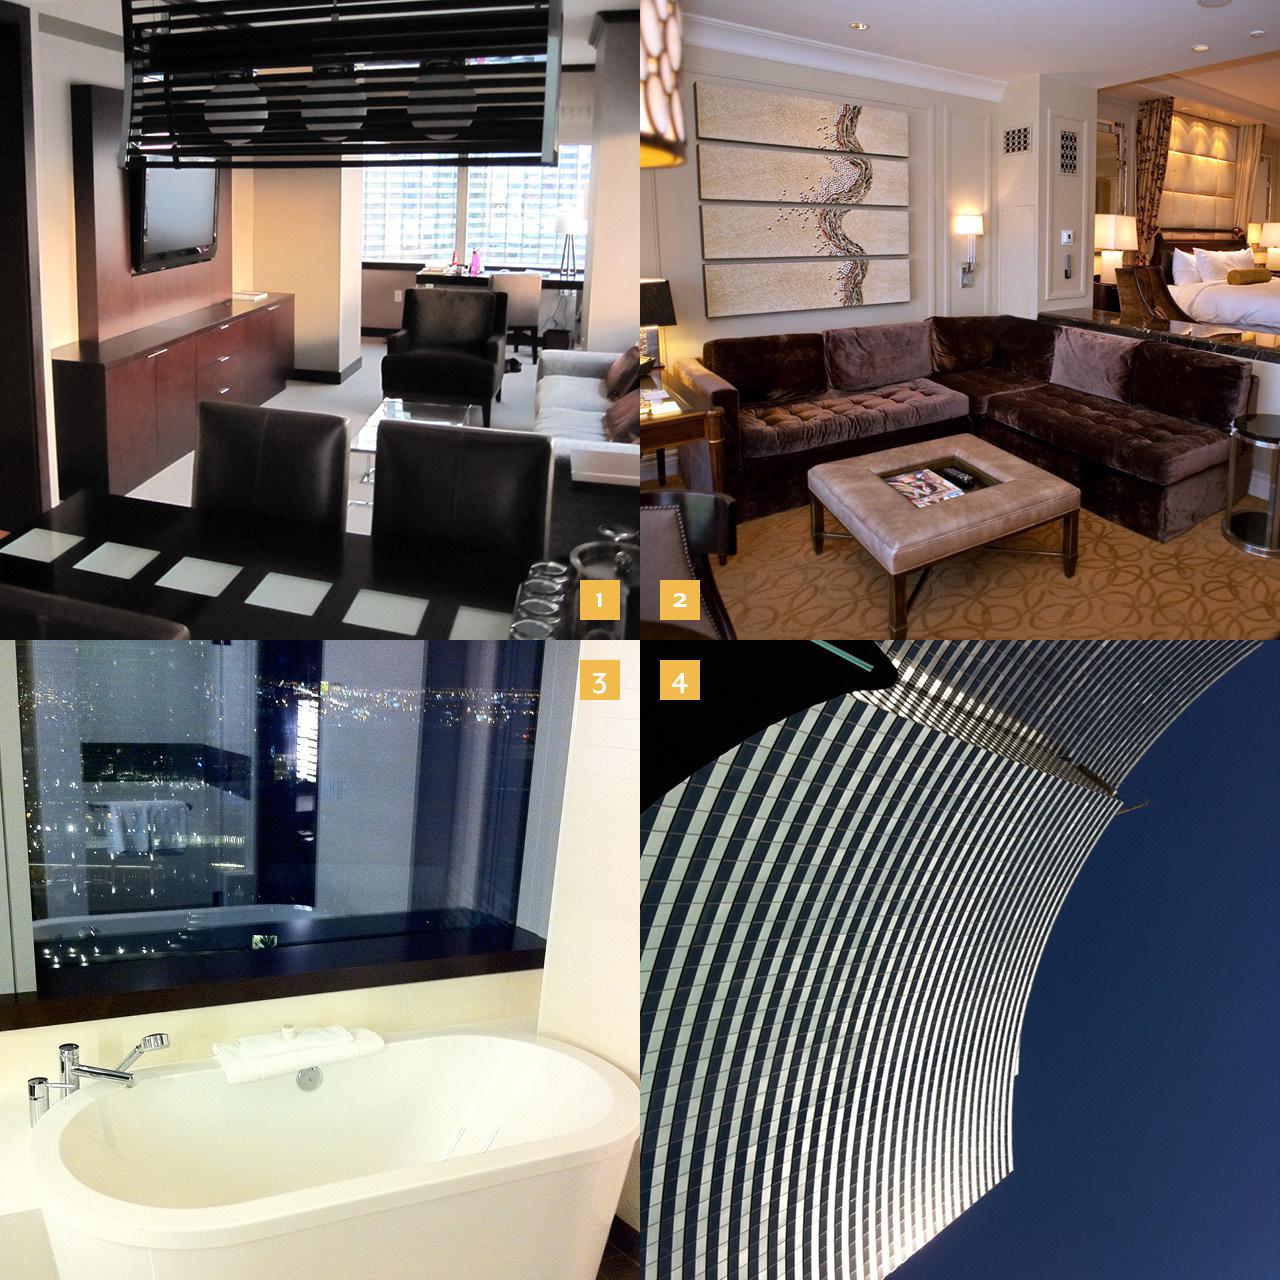 1. The Vdara 2. The Palazzo 3. The tub and 4. the view from the pool  at the Vdara.